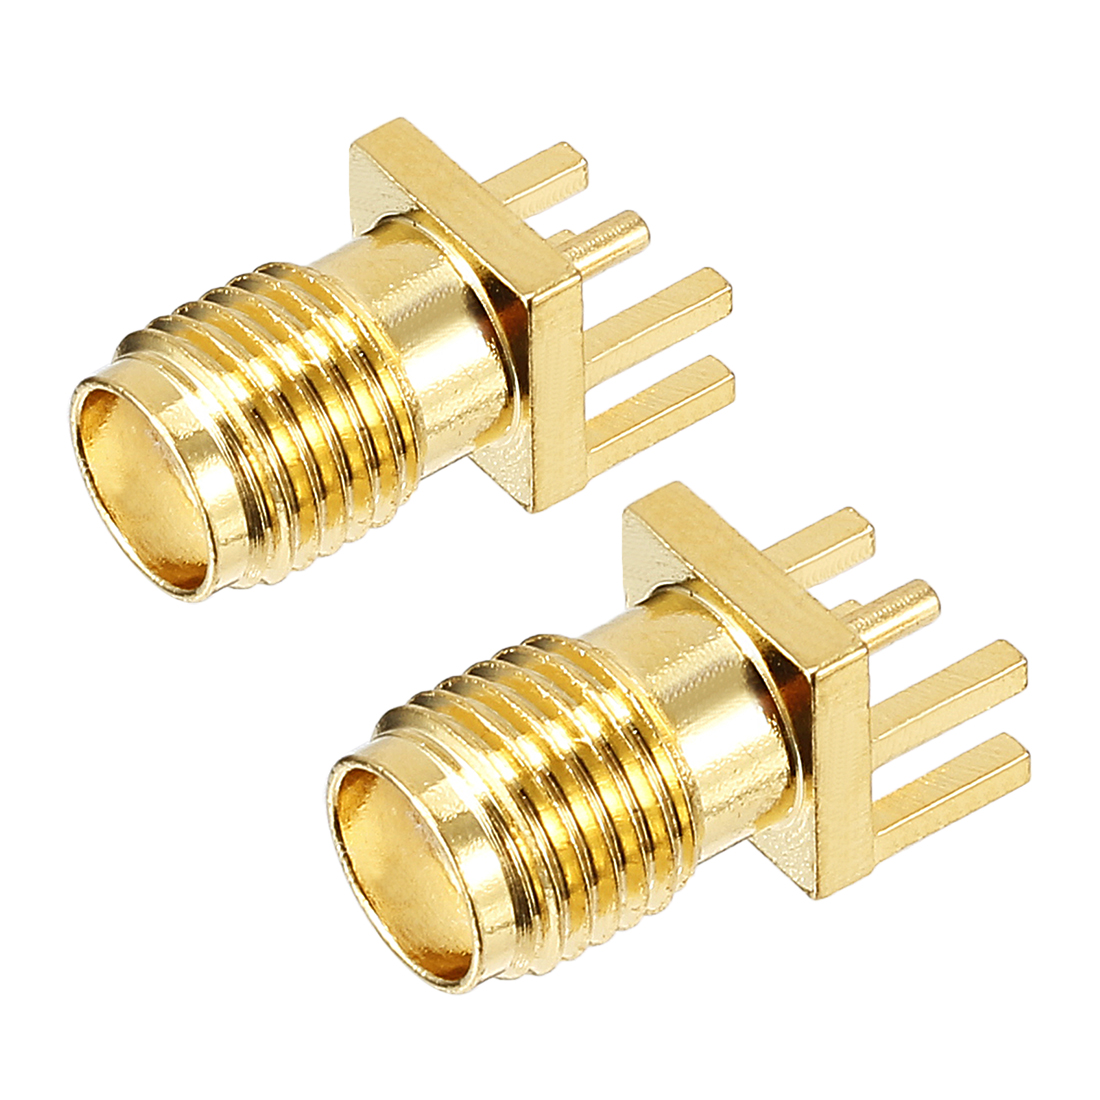 2pcs Gold Tone SMA Female to Offset Pin Jack RF Coaxial Adapter Connector